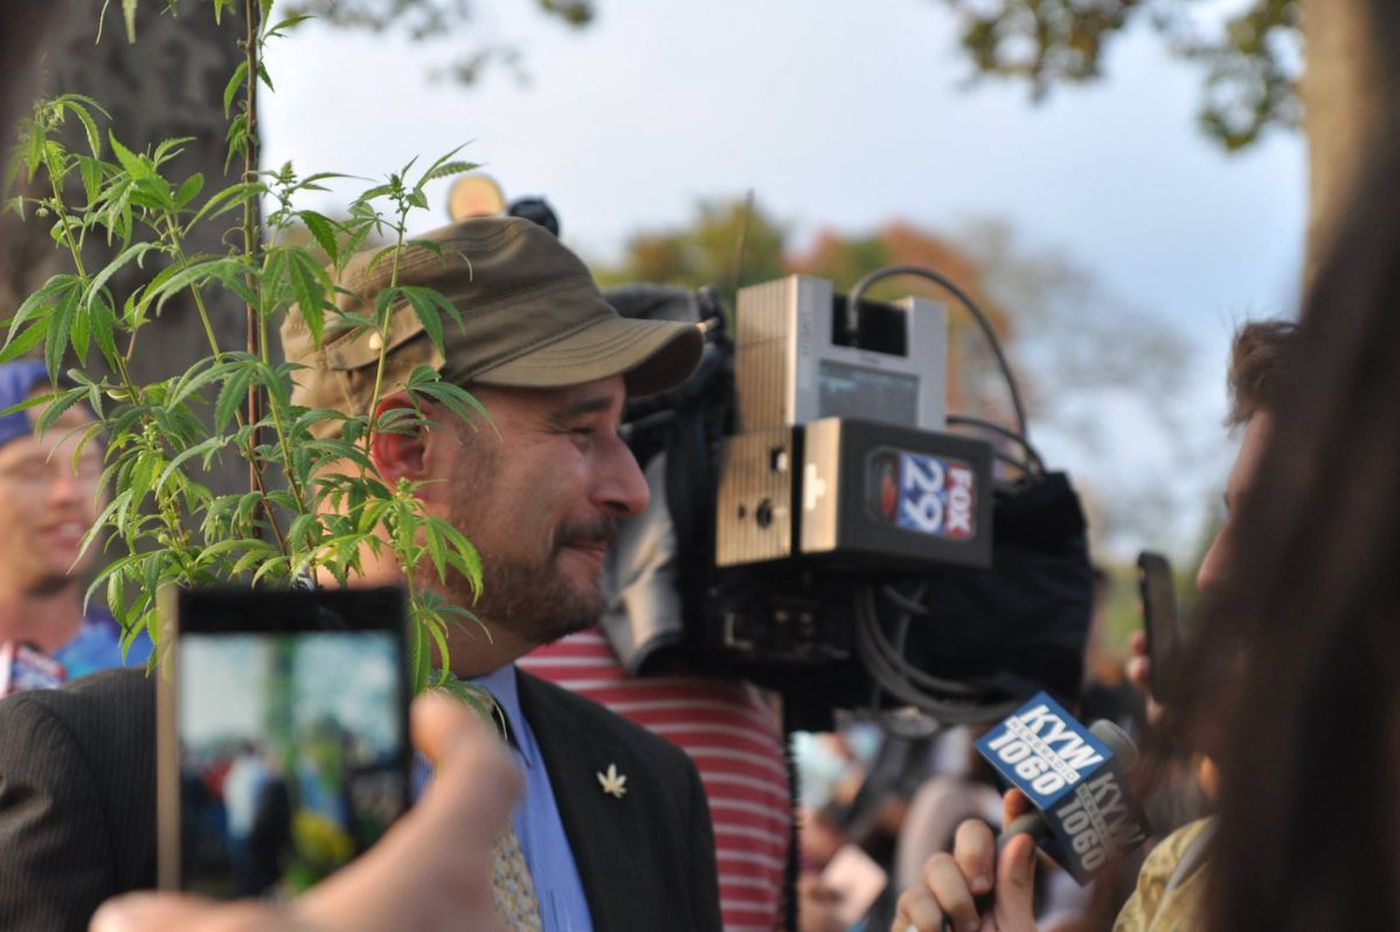 How to grow your own marijuana. (If N.J. legislators allow it, of course.) | Philly 420